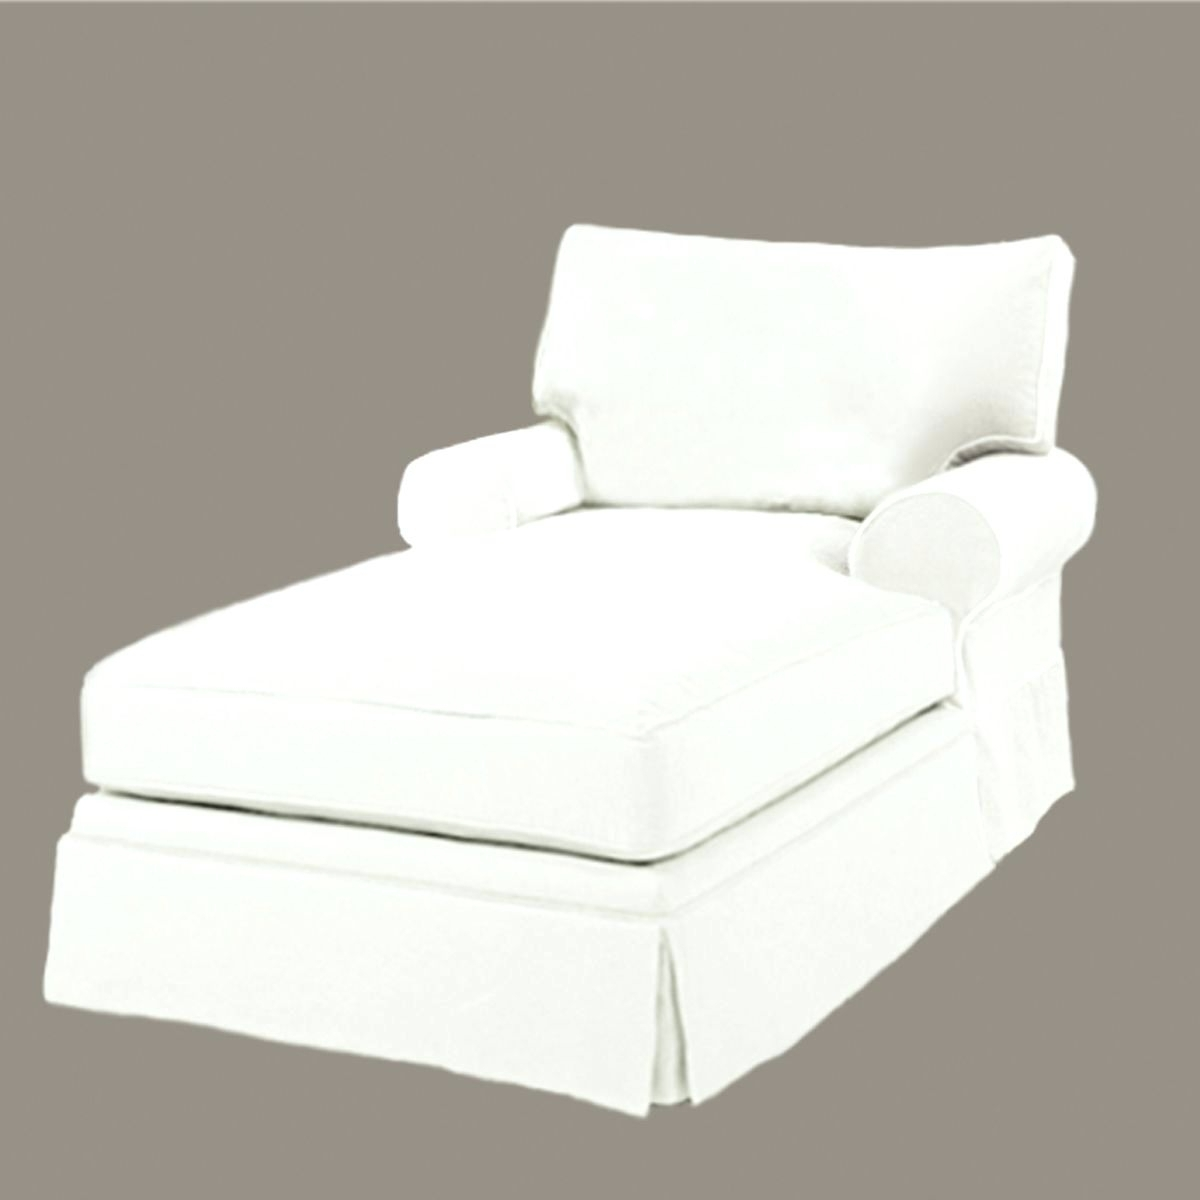 Indoor Chaise Lounge Covers Pertaining To Newest Cover For Indoor Chaise Lounge Chair • Lounge Chairs Ideas (View 5 of 15)